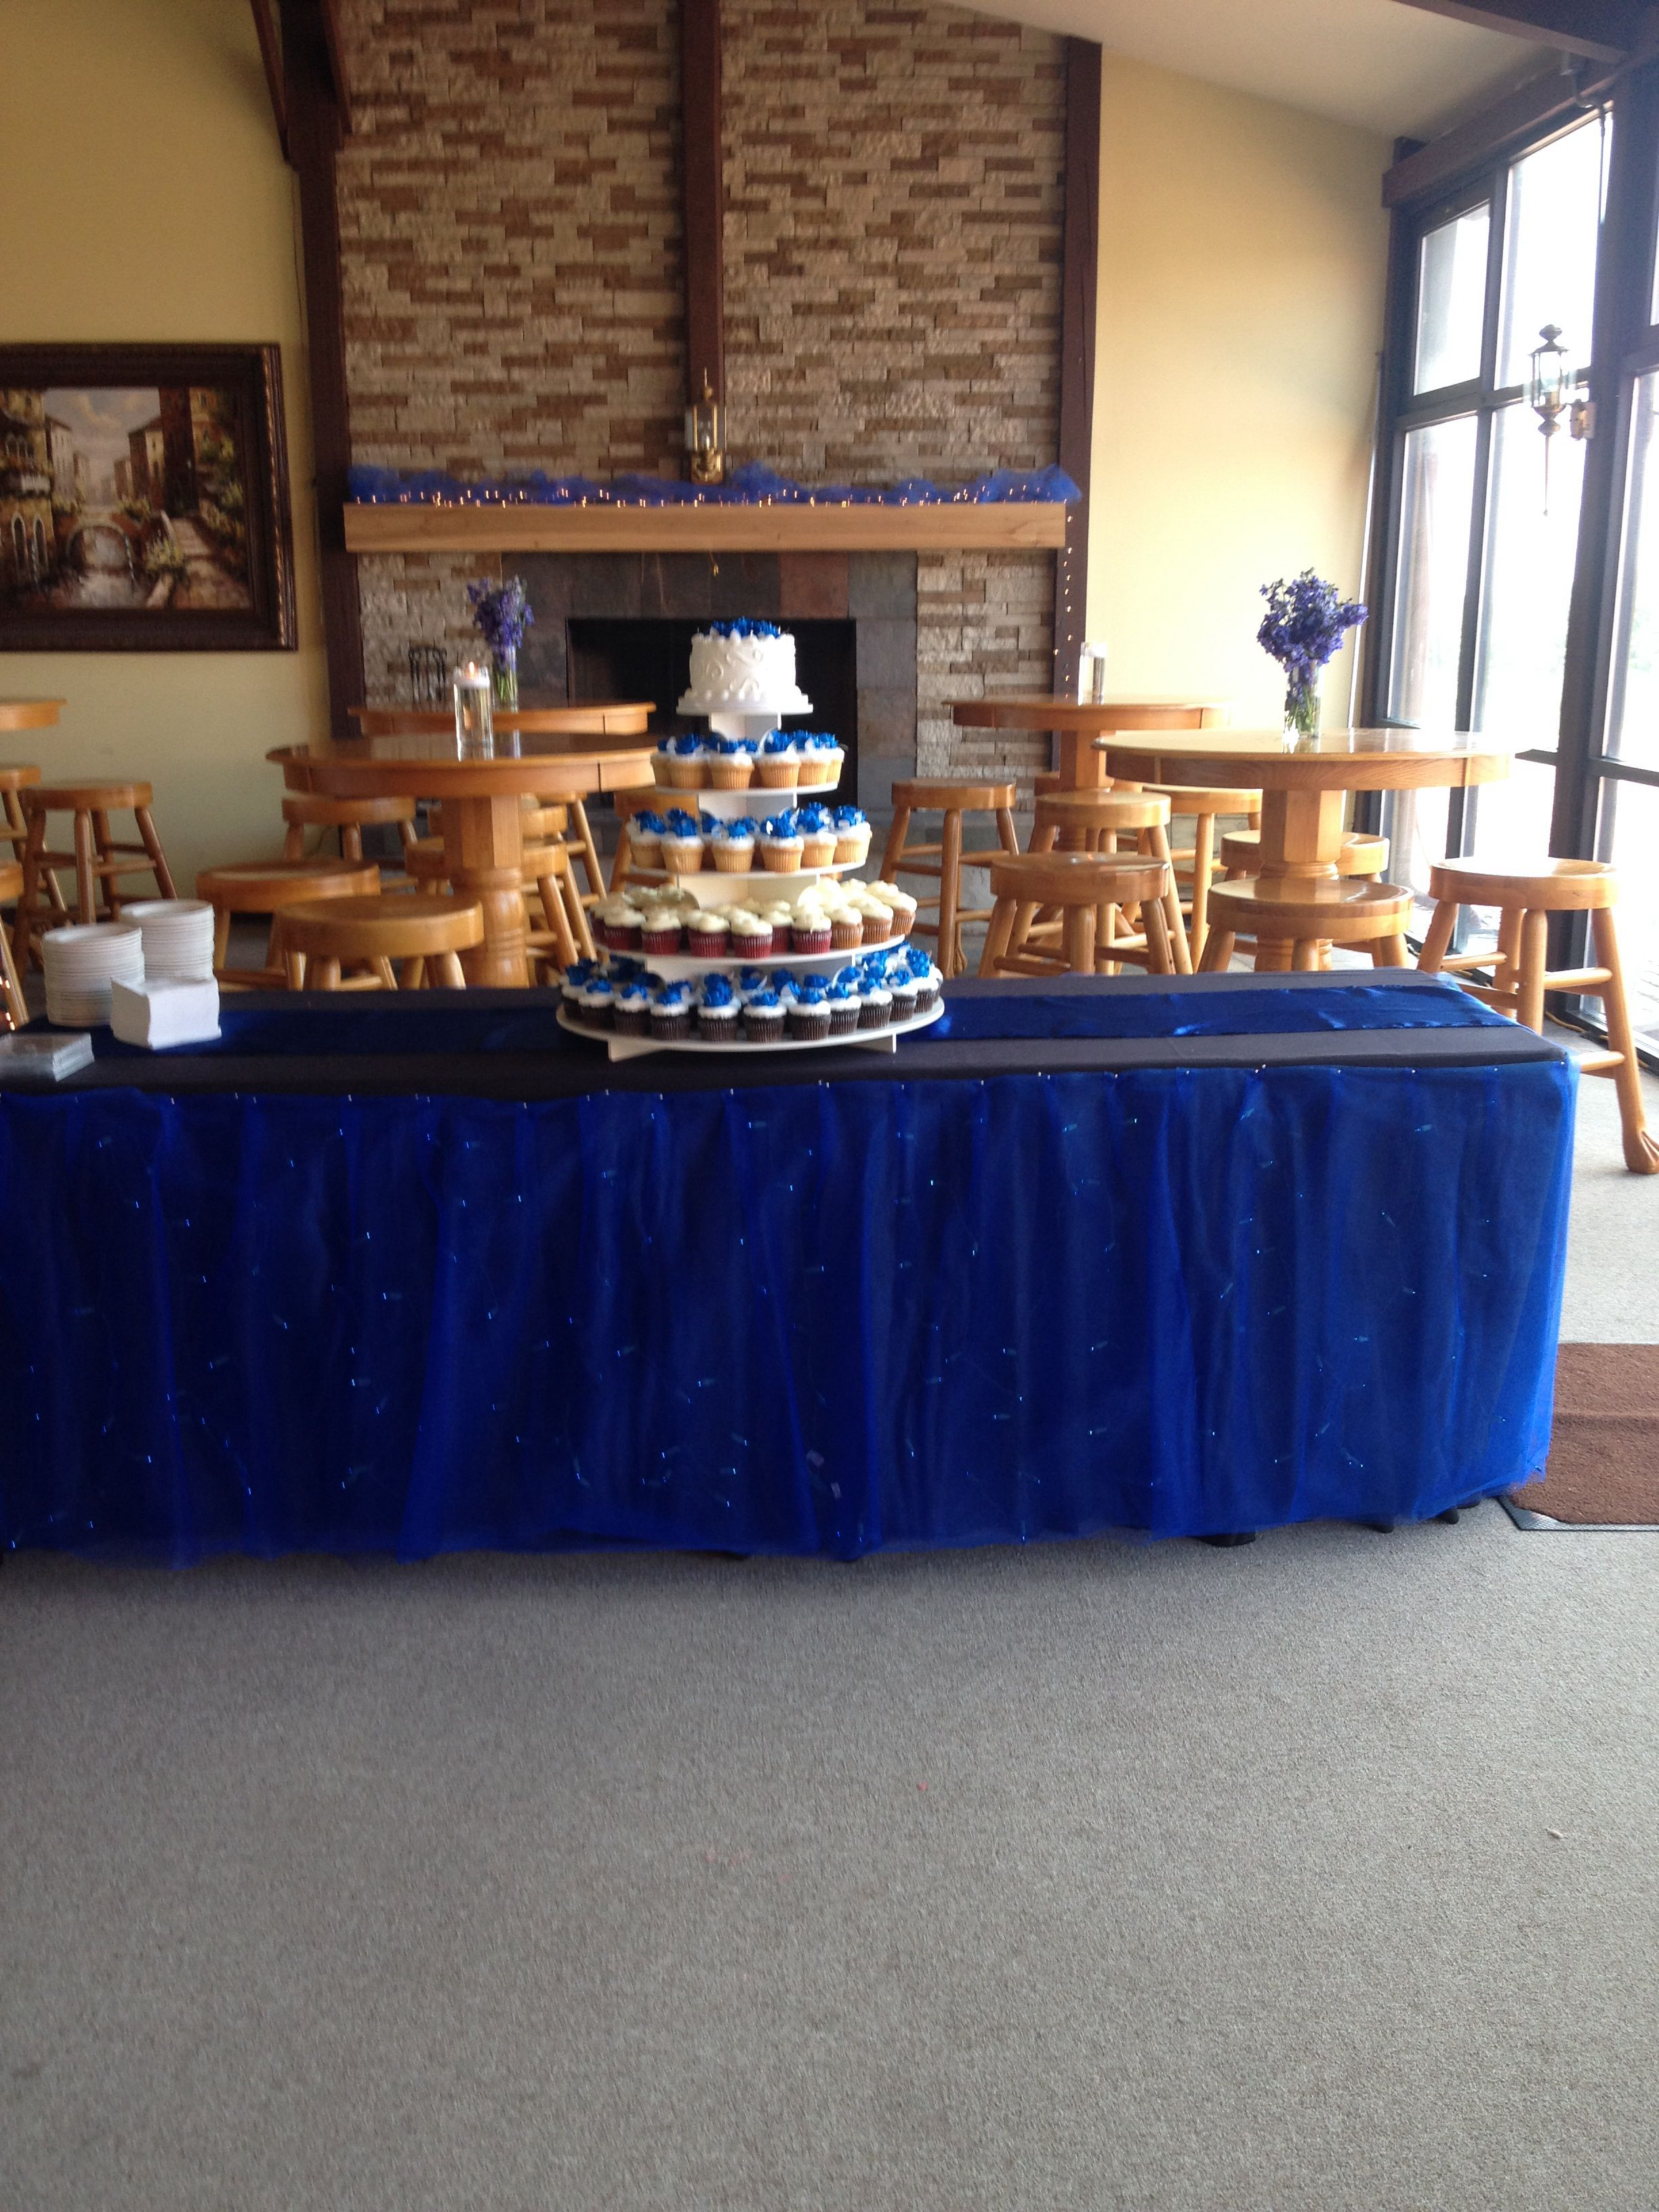 Cake Table Cupcake Tier By Larrys House Of Cakes Carbondale Blue Under Lighting With Tulle Skirt